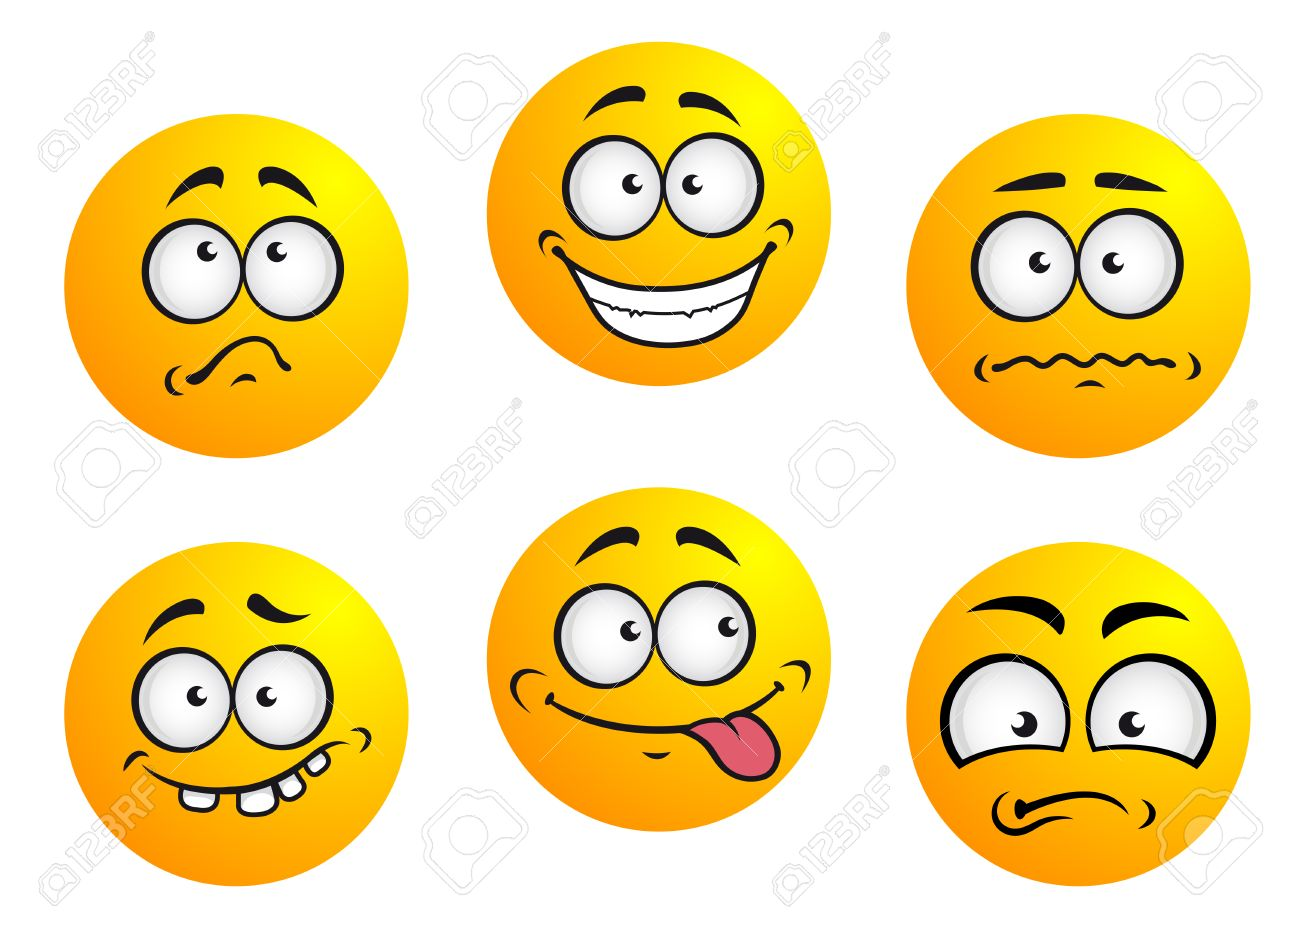 Set of six round yellow emoticons showing facial expression depicting happiness, sadness, bashful, nonplussed, embarrassed, tongue out and toothy - 25157434